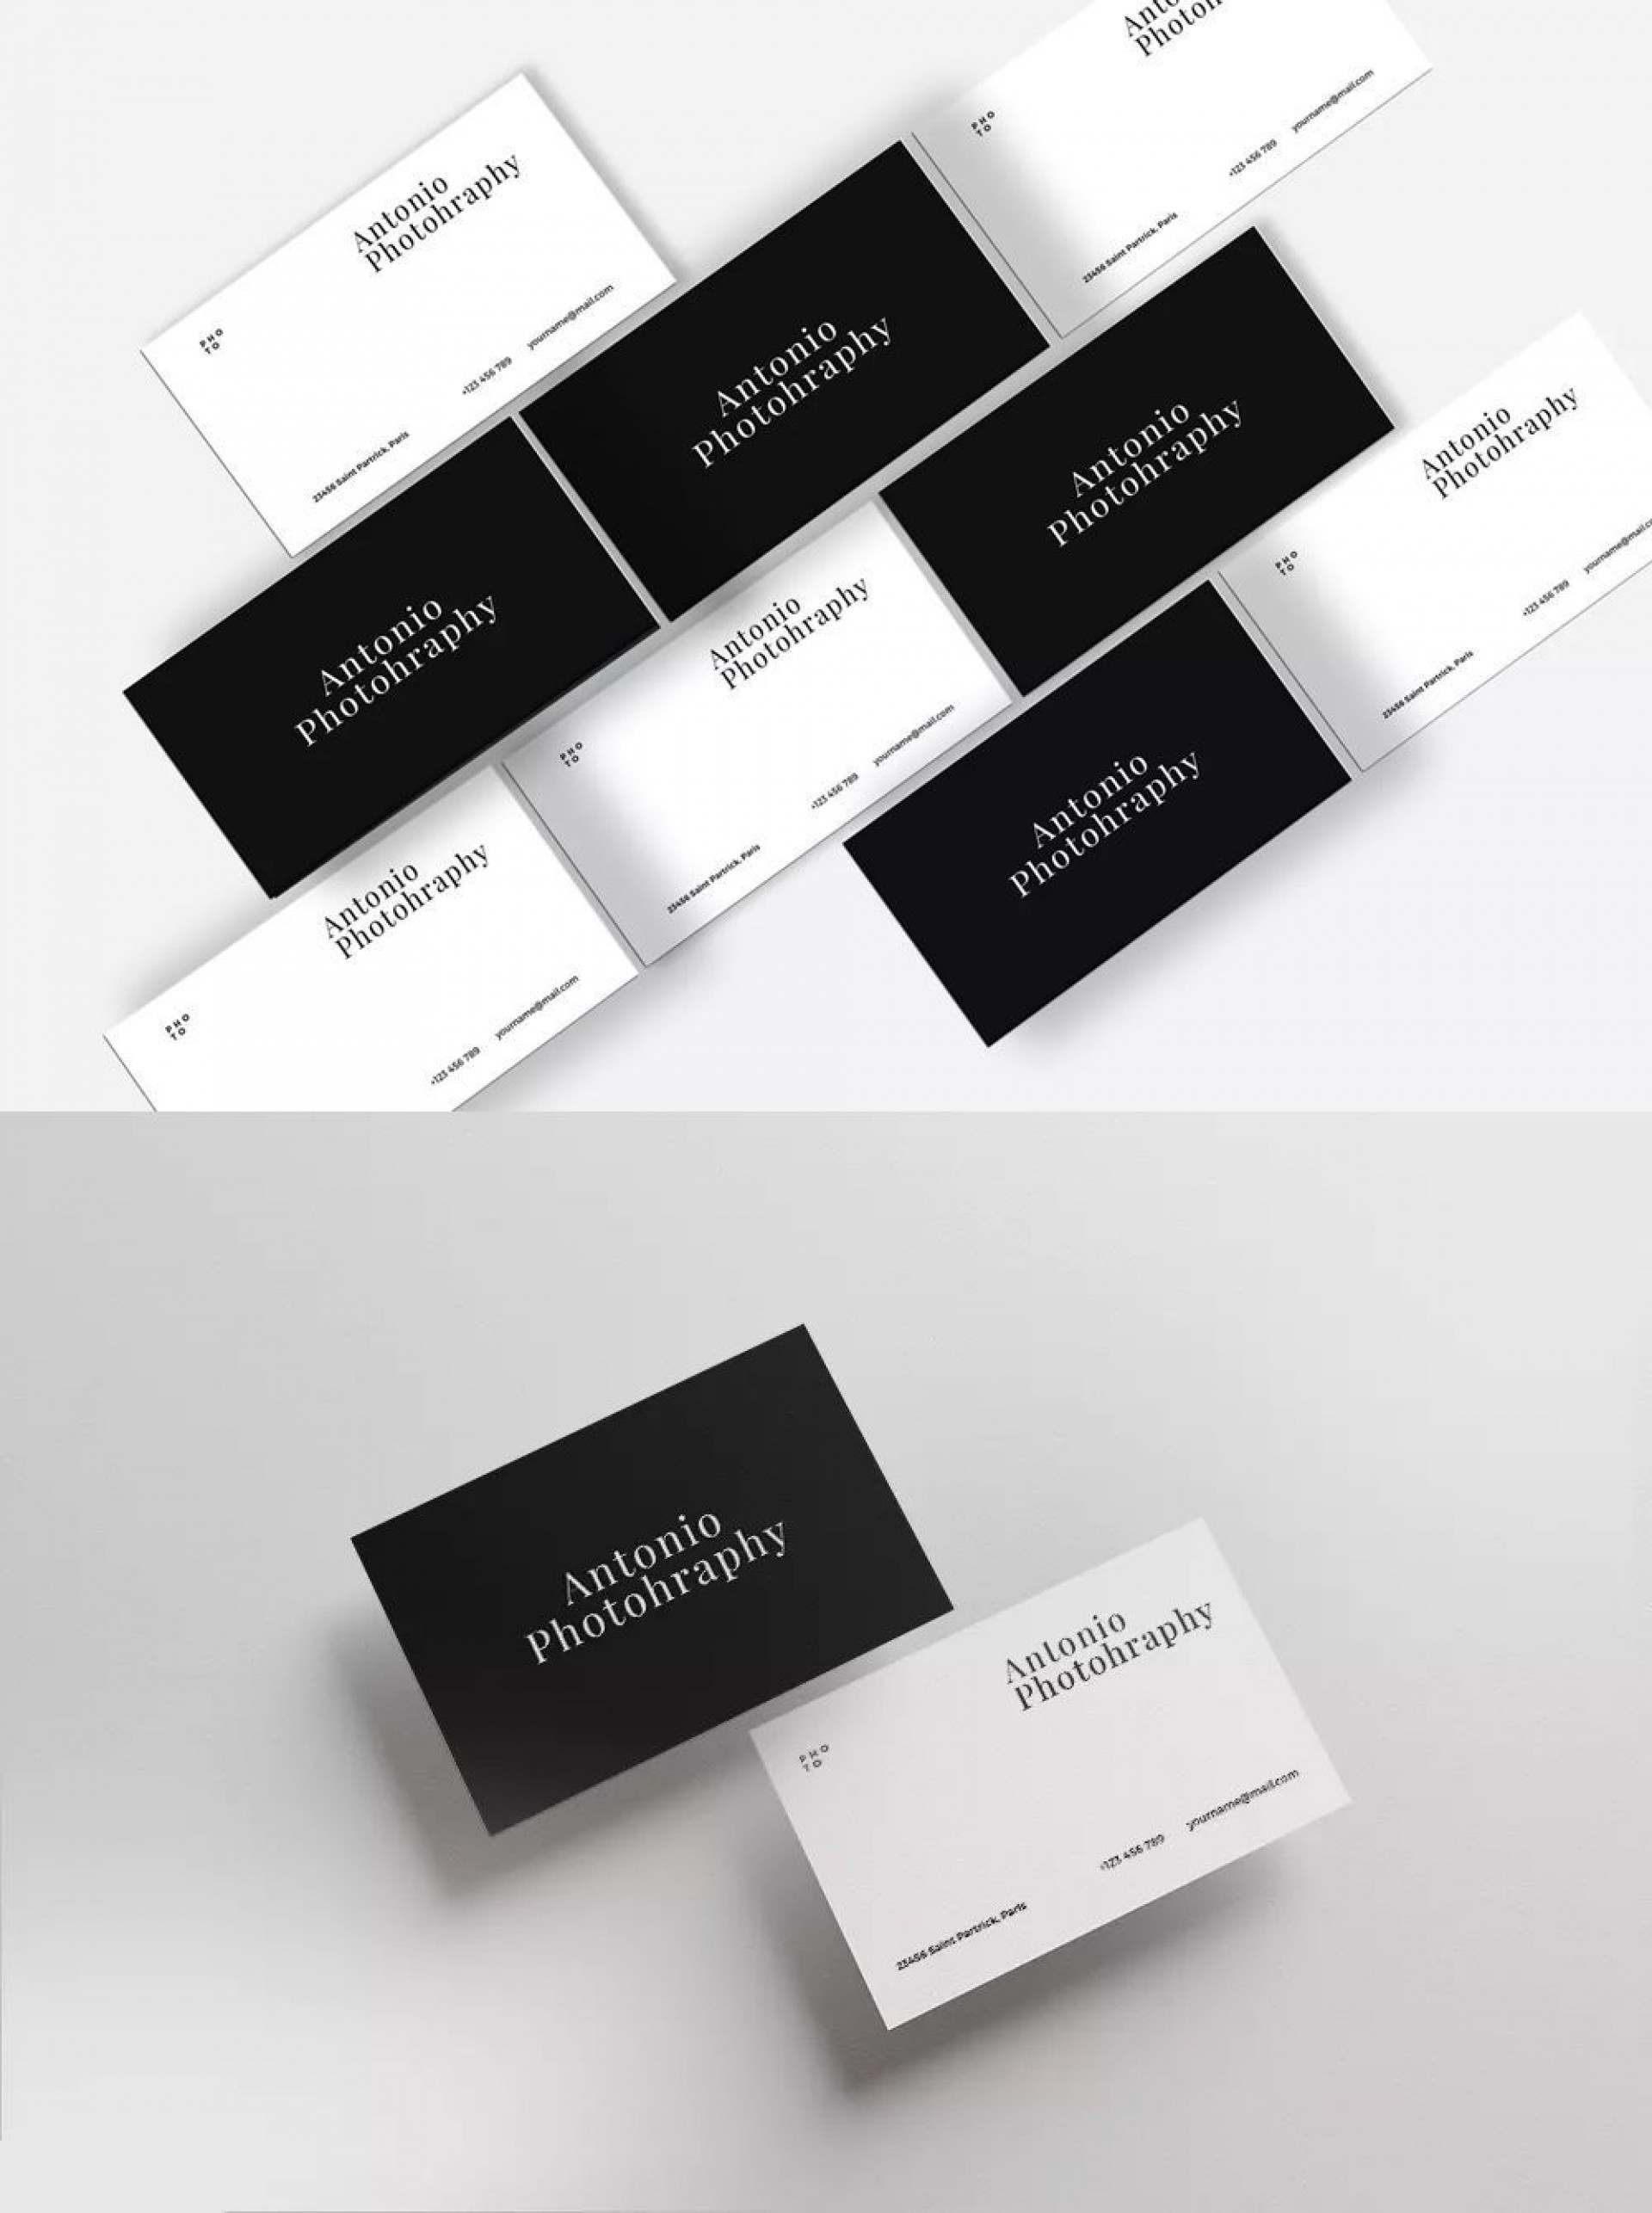 002 Exceptional Minimal Busines Card Template Psd Photo  Simple Visiting Design In Photoshop File Free Download1920